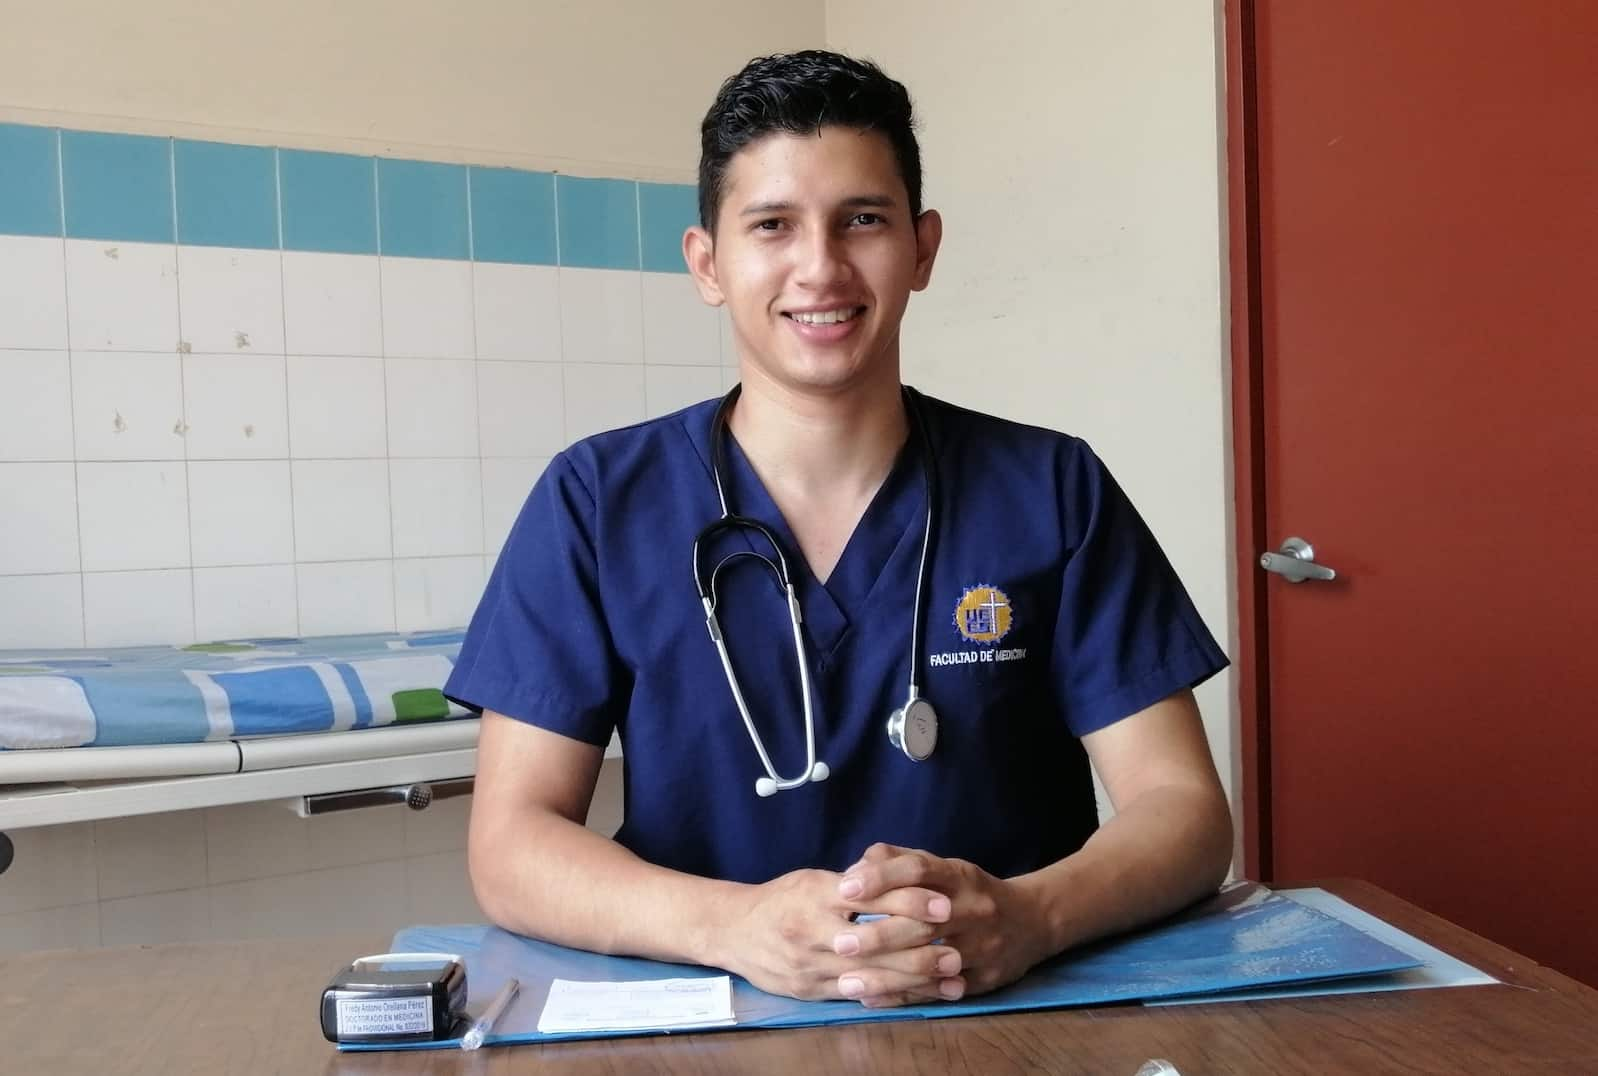 A man in scrubs with a stethoscope sits at a desk.